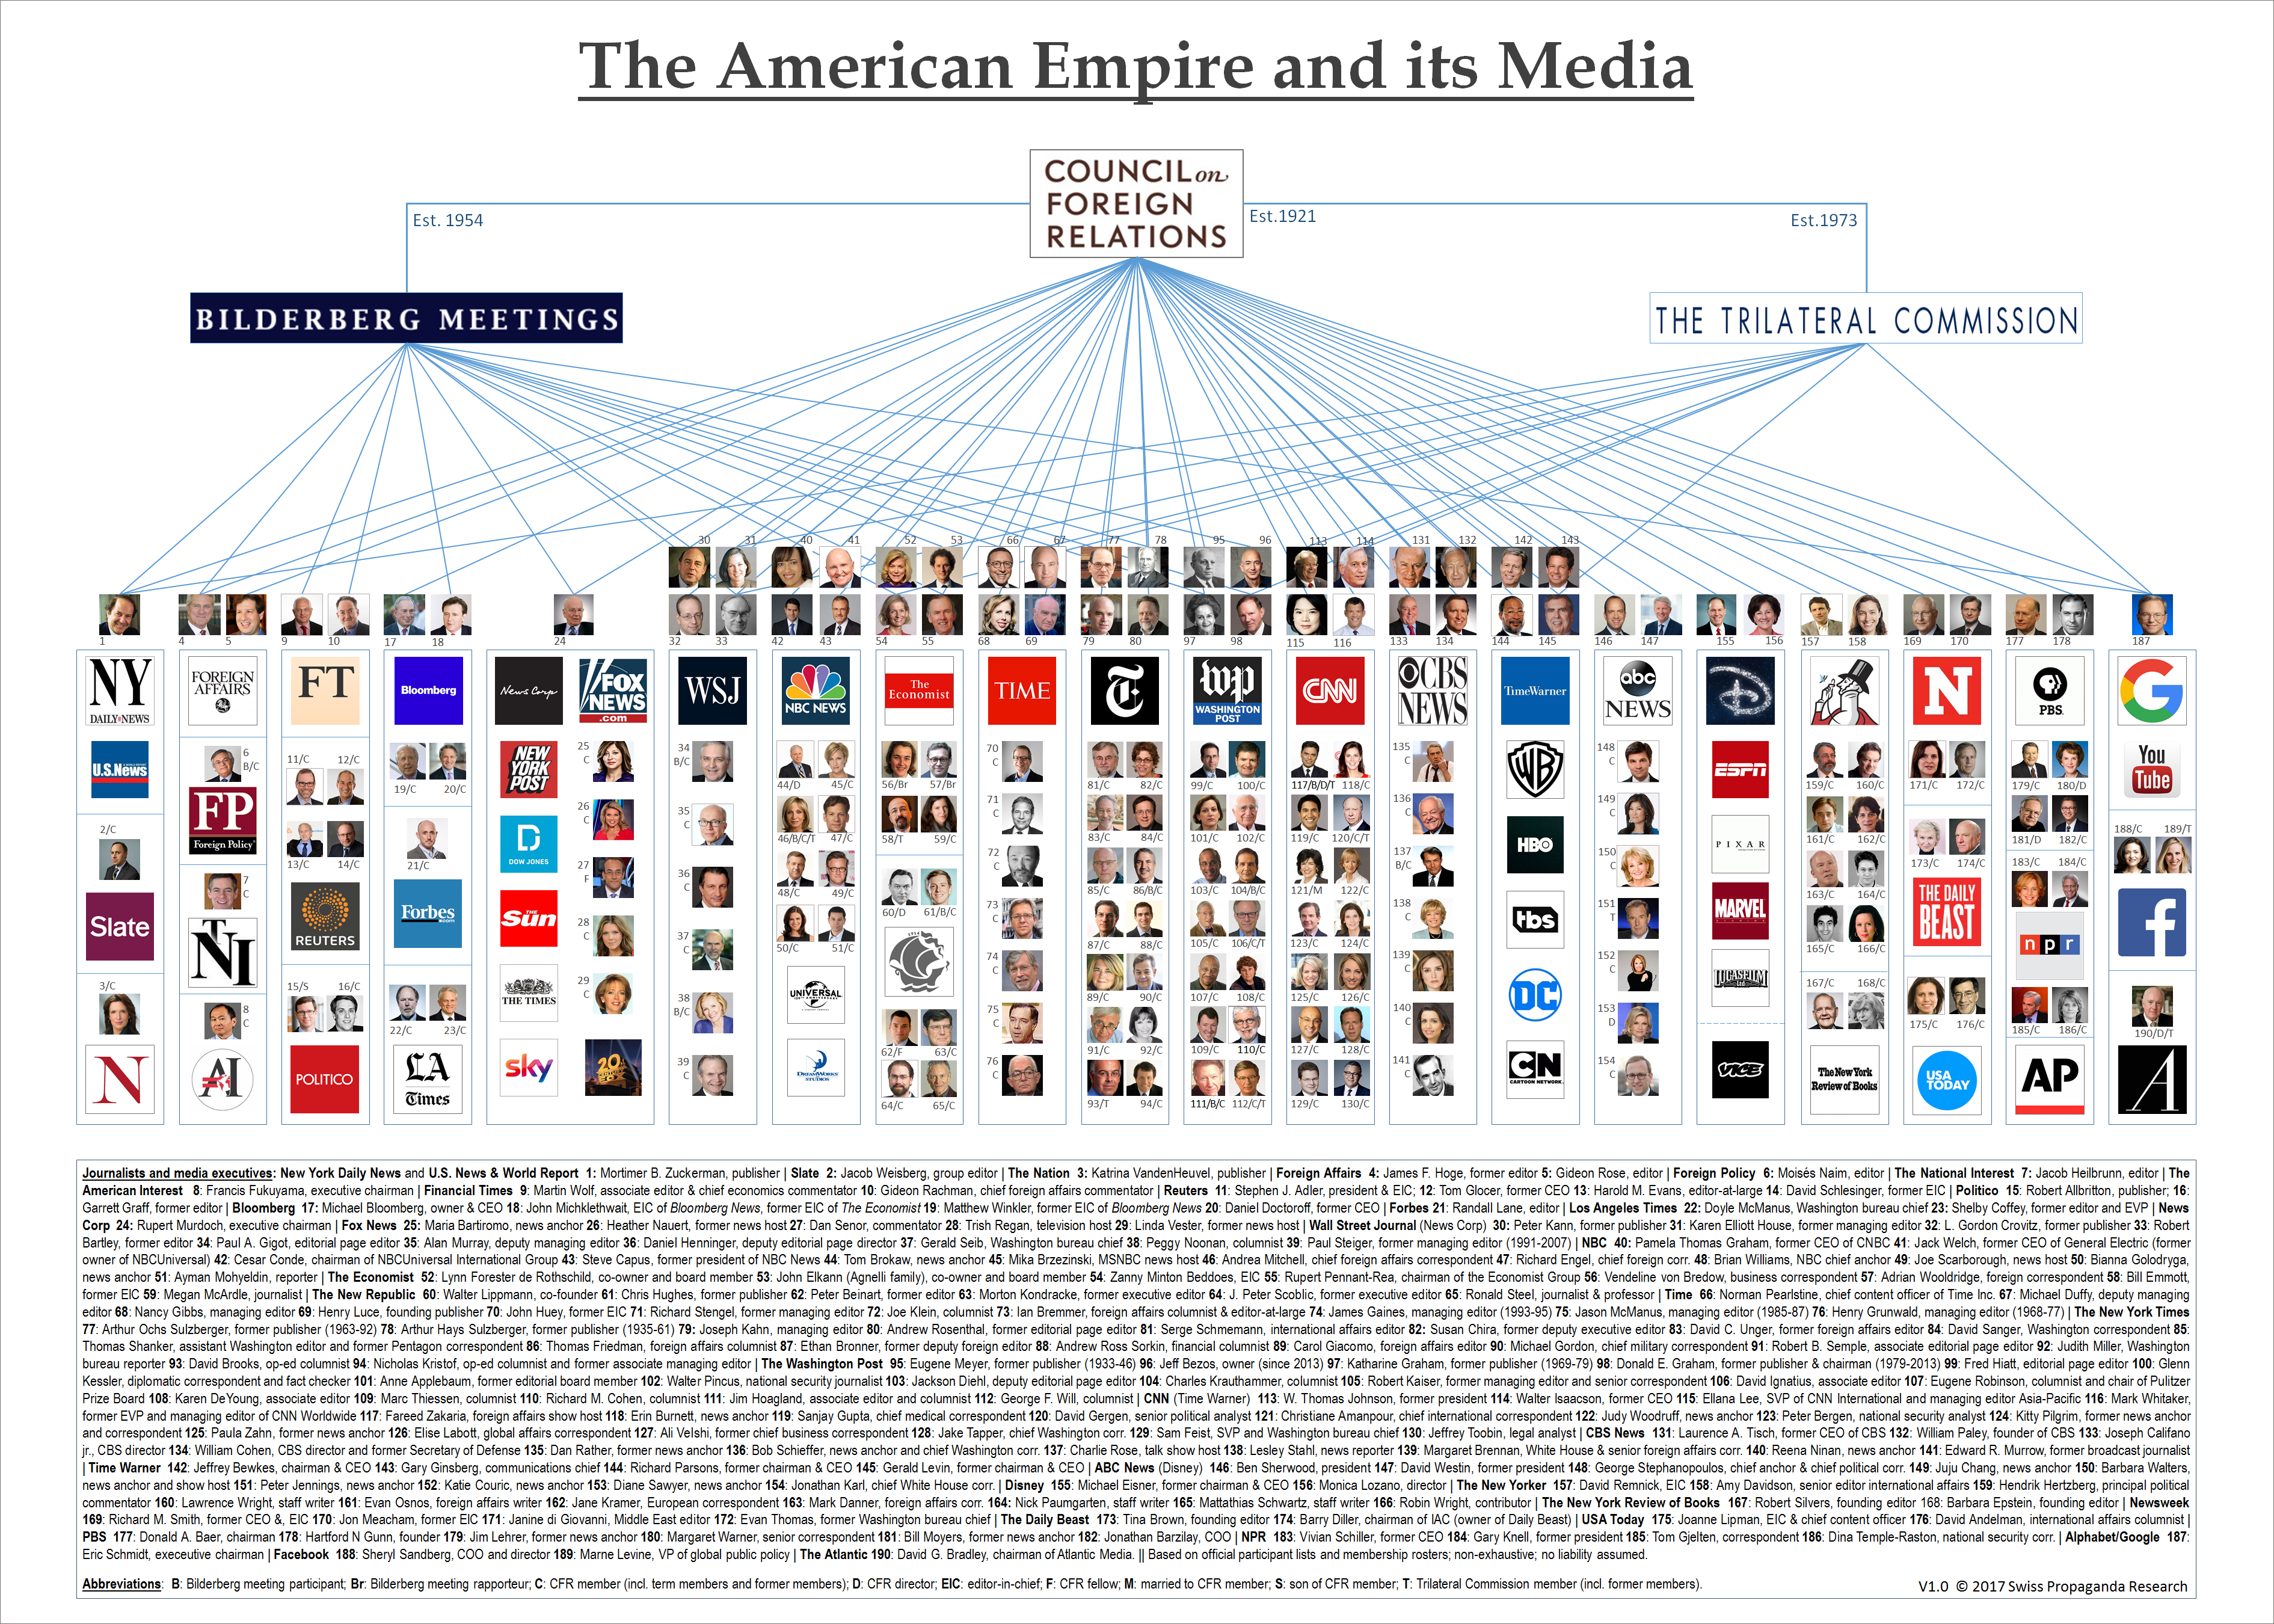 The American Empire and its Media